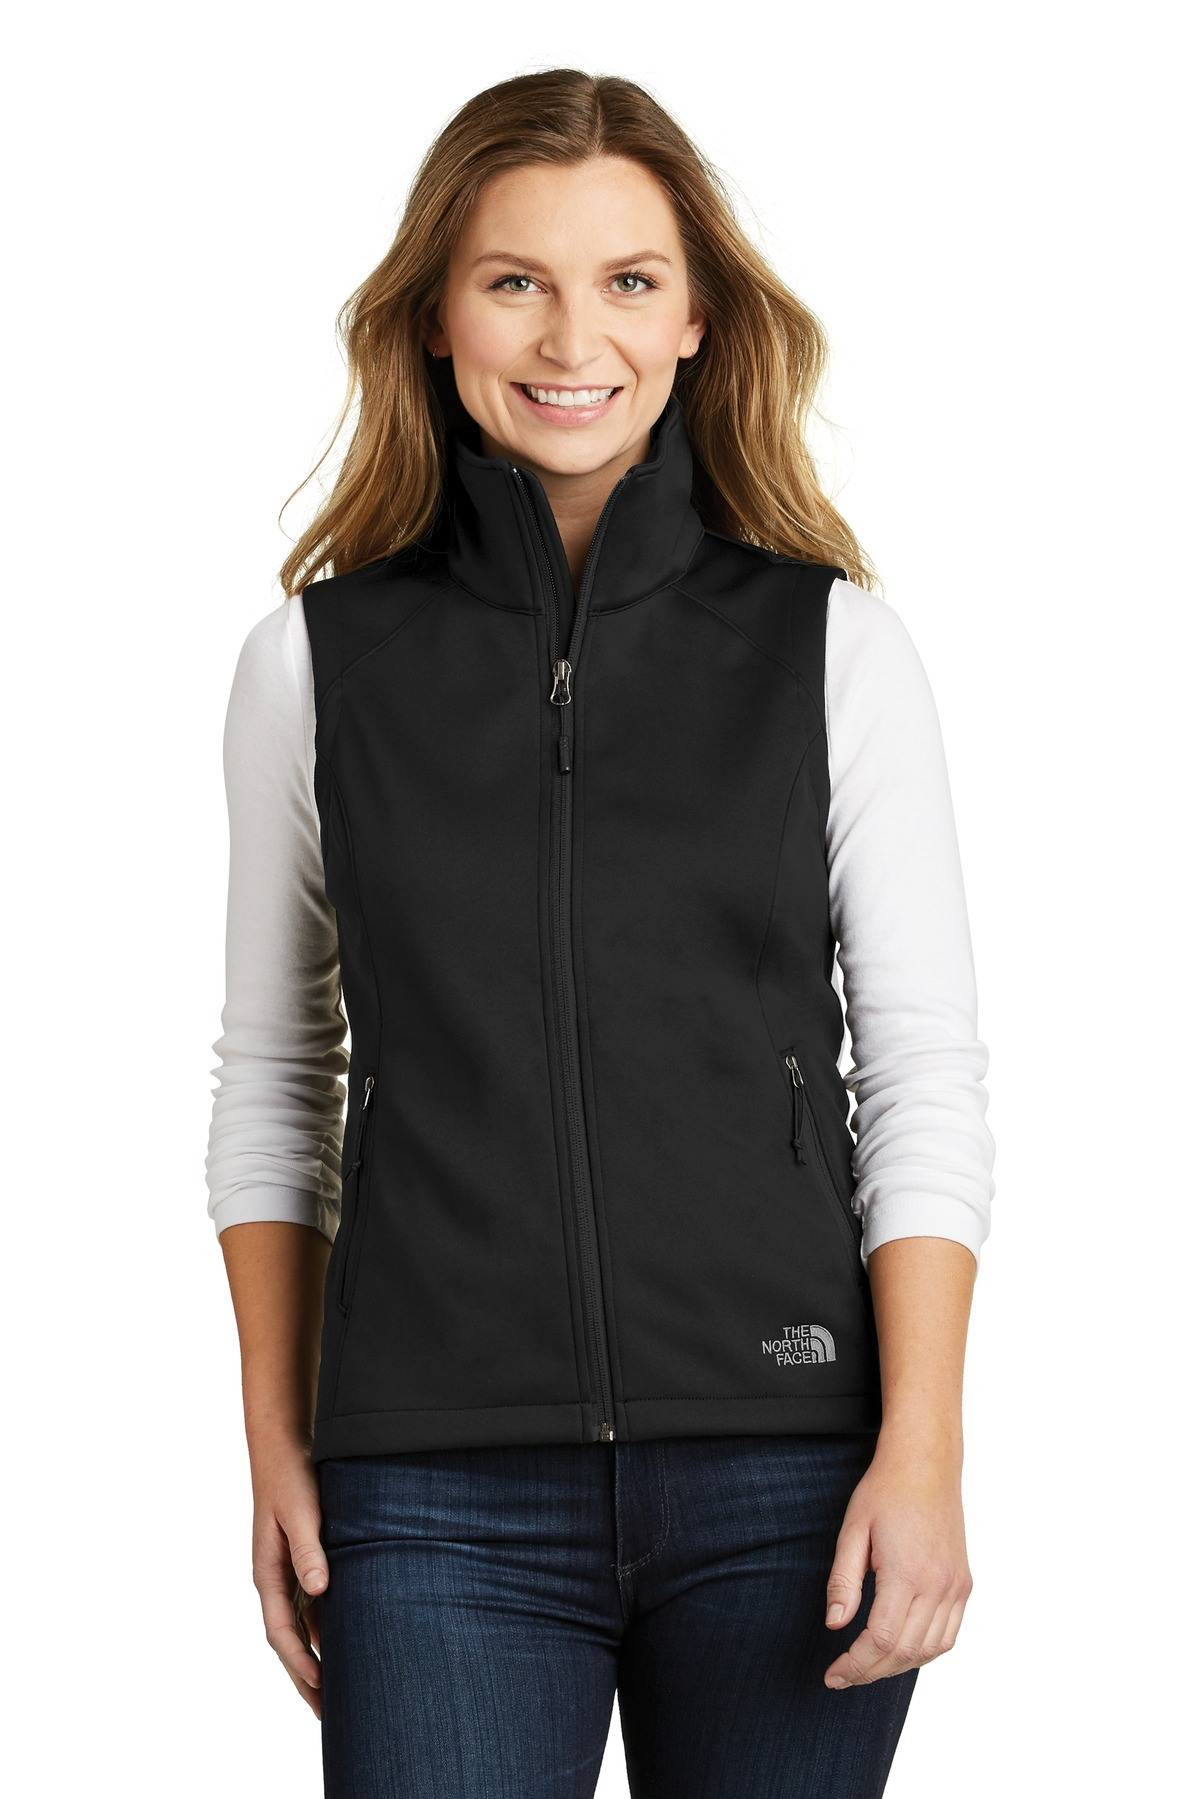 The North Face  ®  Ladies Ridgewall Soft Shell Vest. NF0A3LH1 - TNF Black